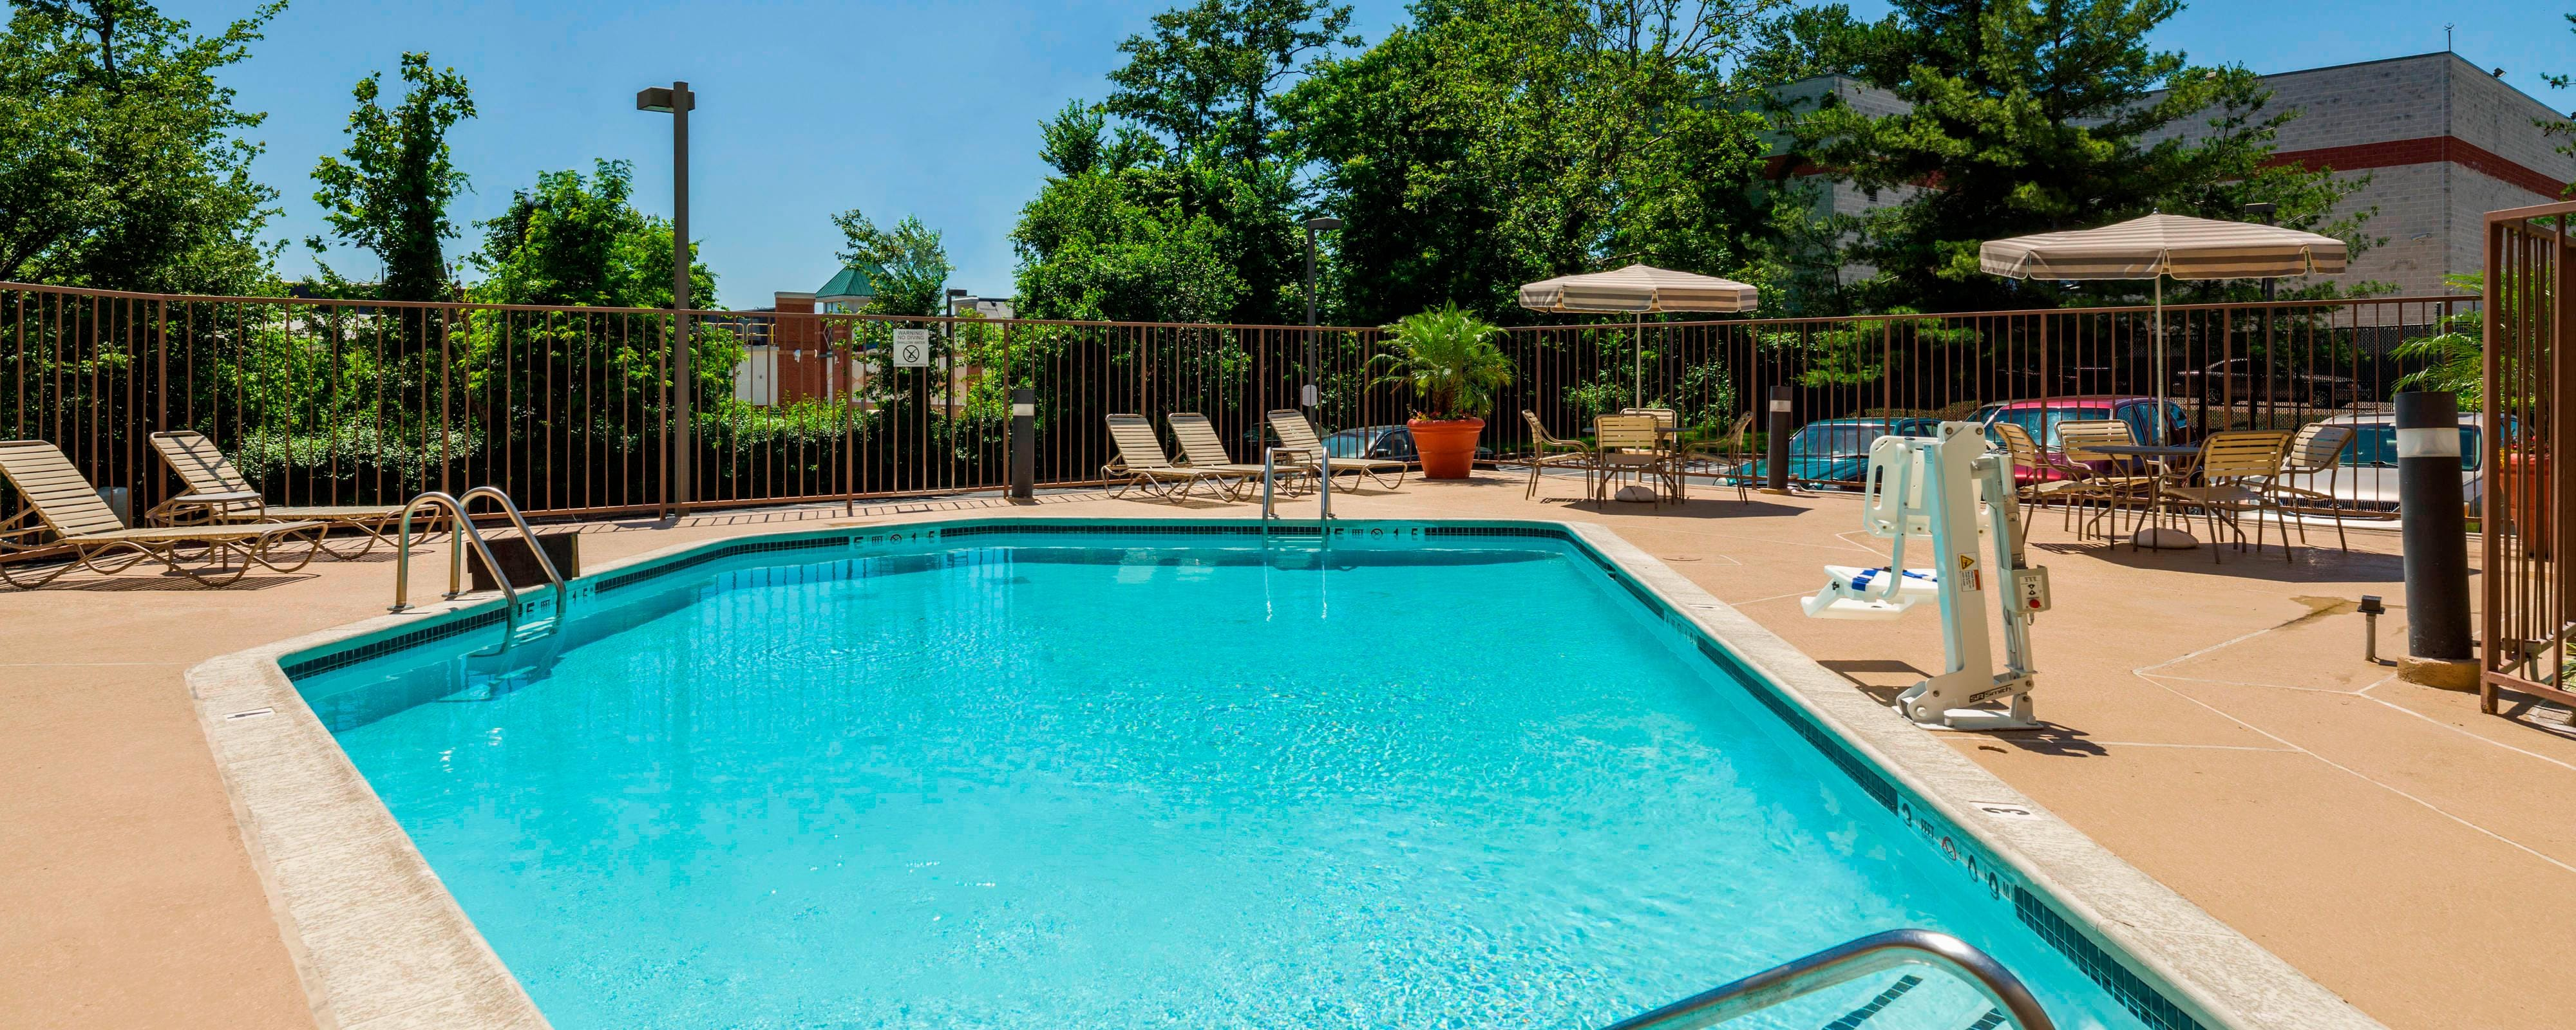 Laurel Maryland hotel with pool